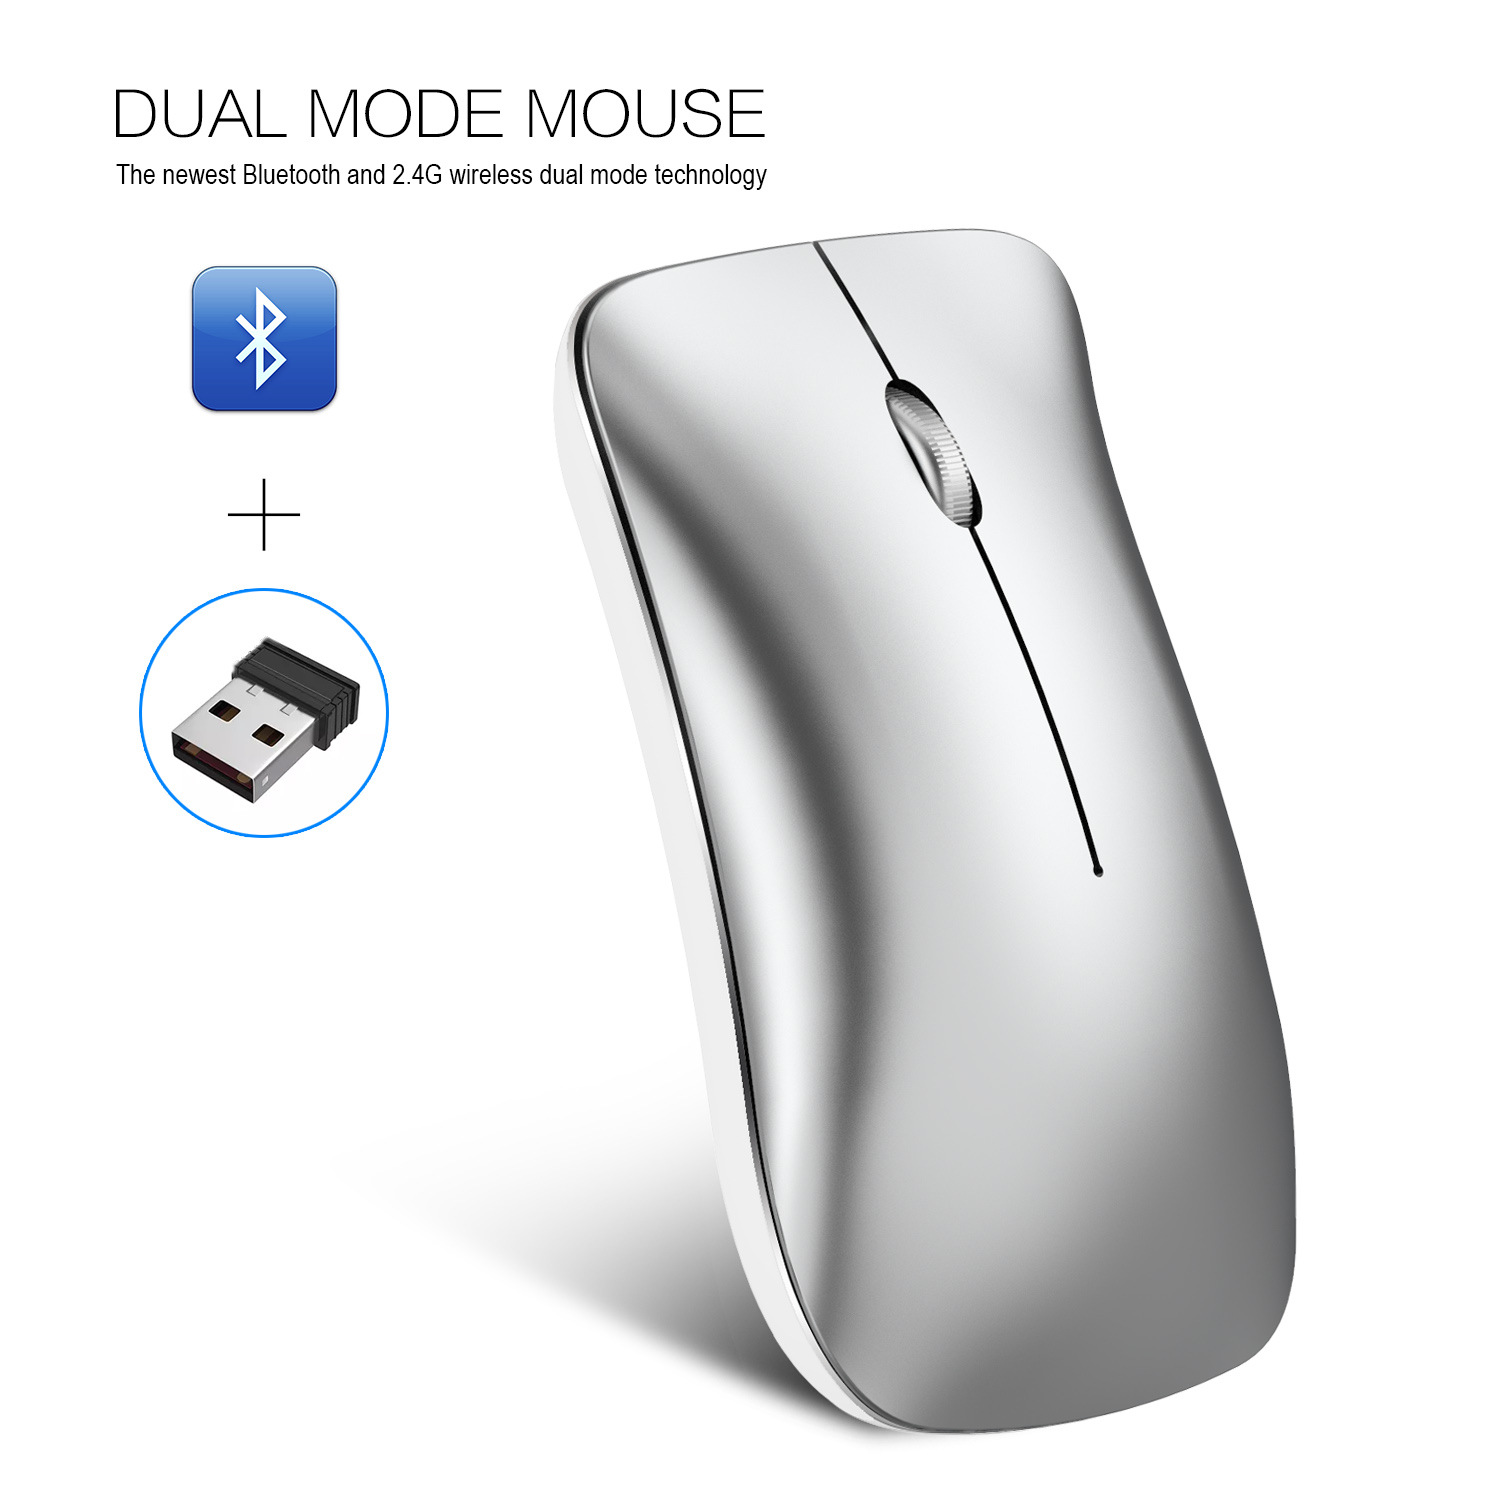 Wireless Bluetooth Mouse Rechargeable 2.4G USB Optical Vertical Ergonomic Dual Mode Mute Mouse Silver